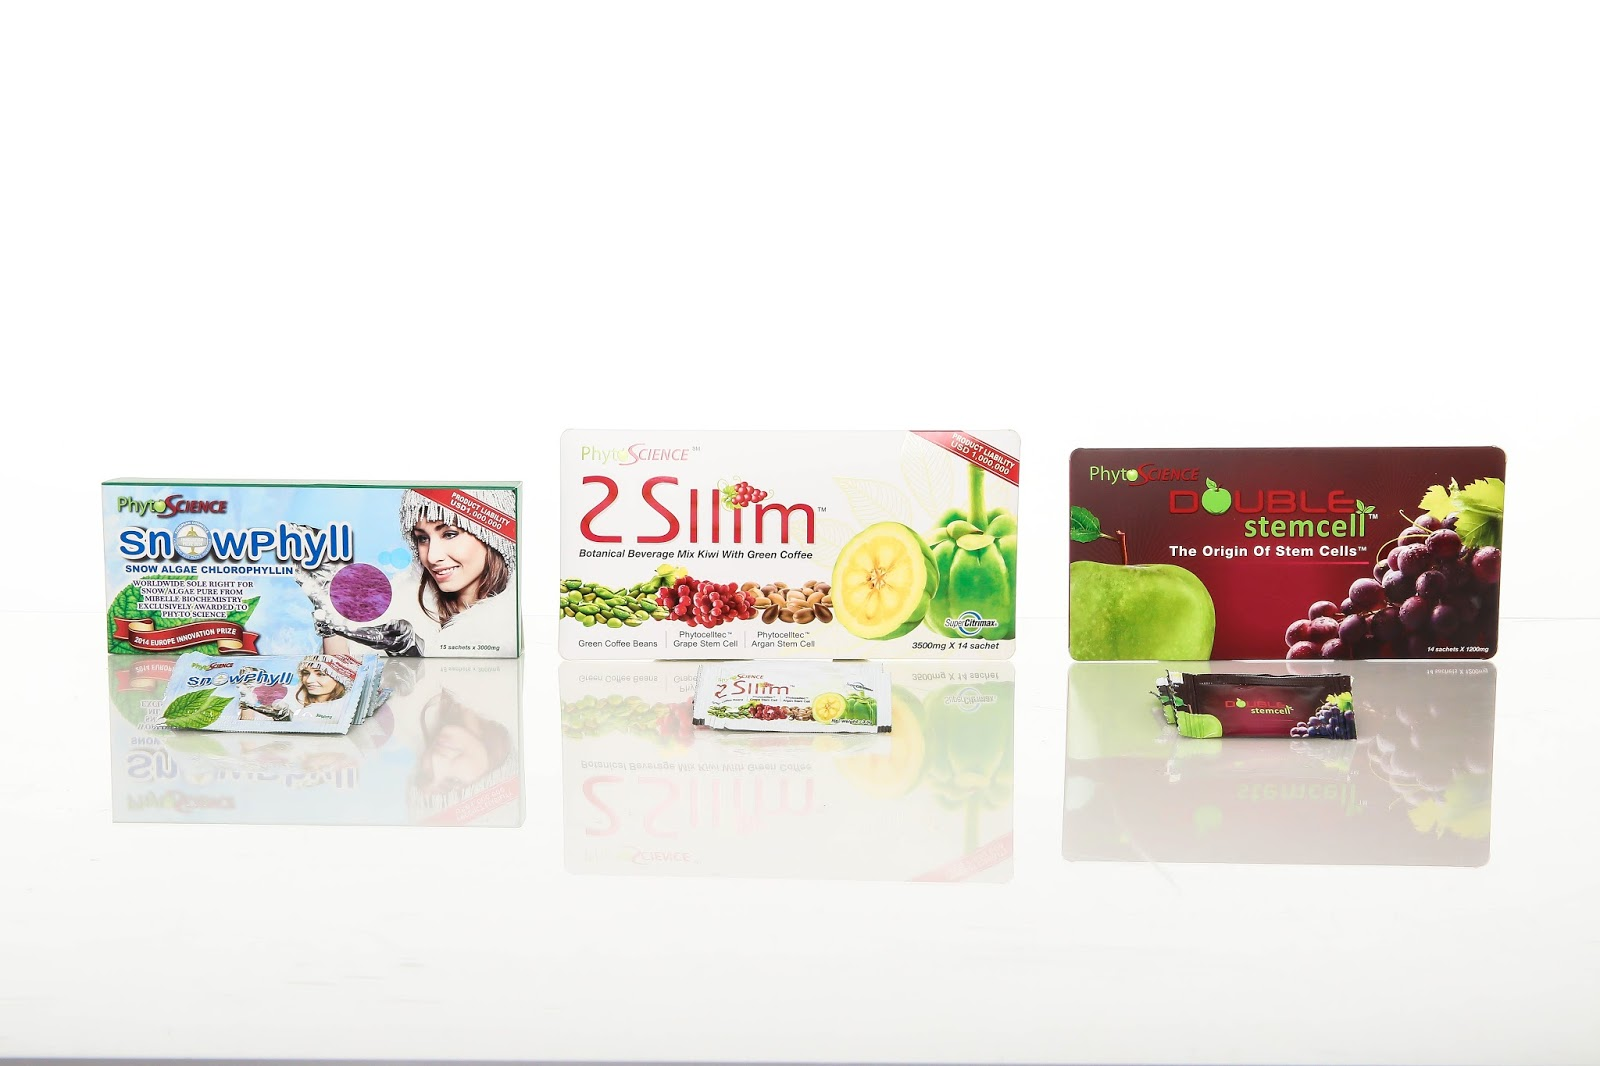 Phytoscience Stemcell Product Nutrition